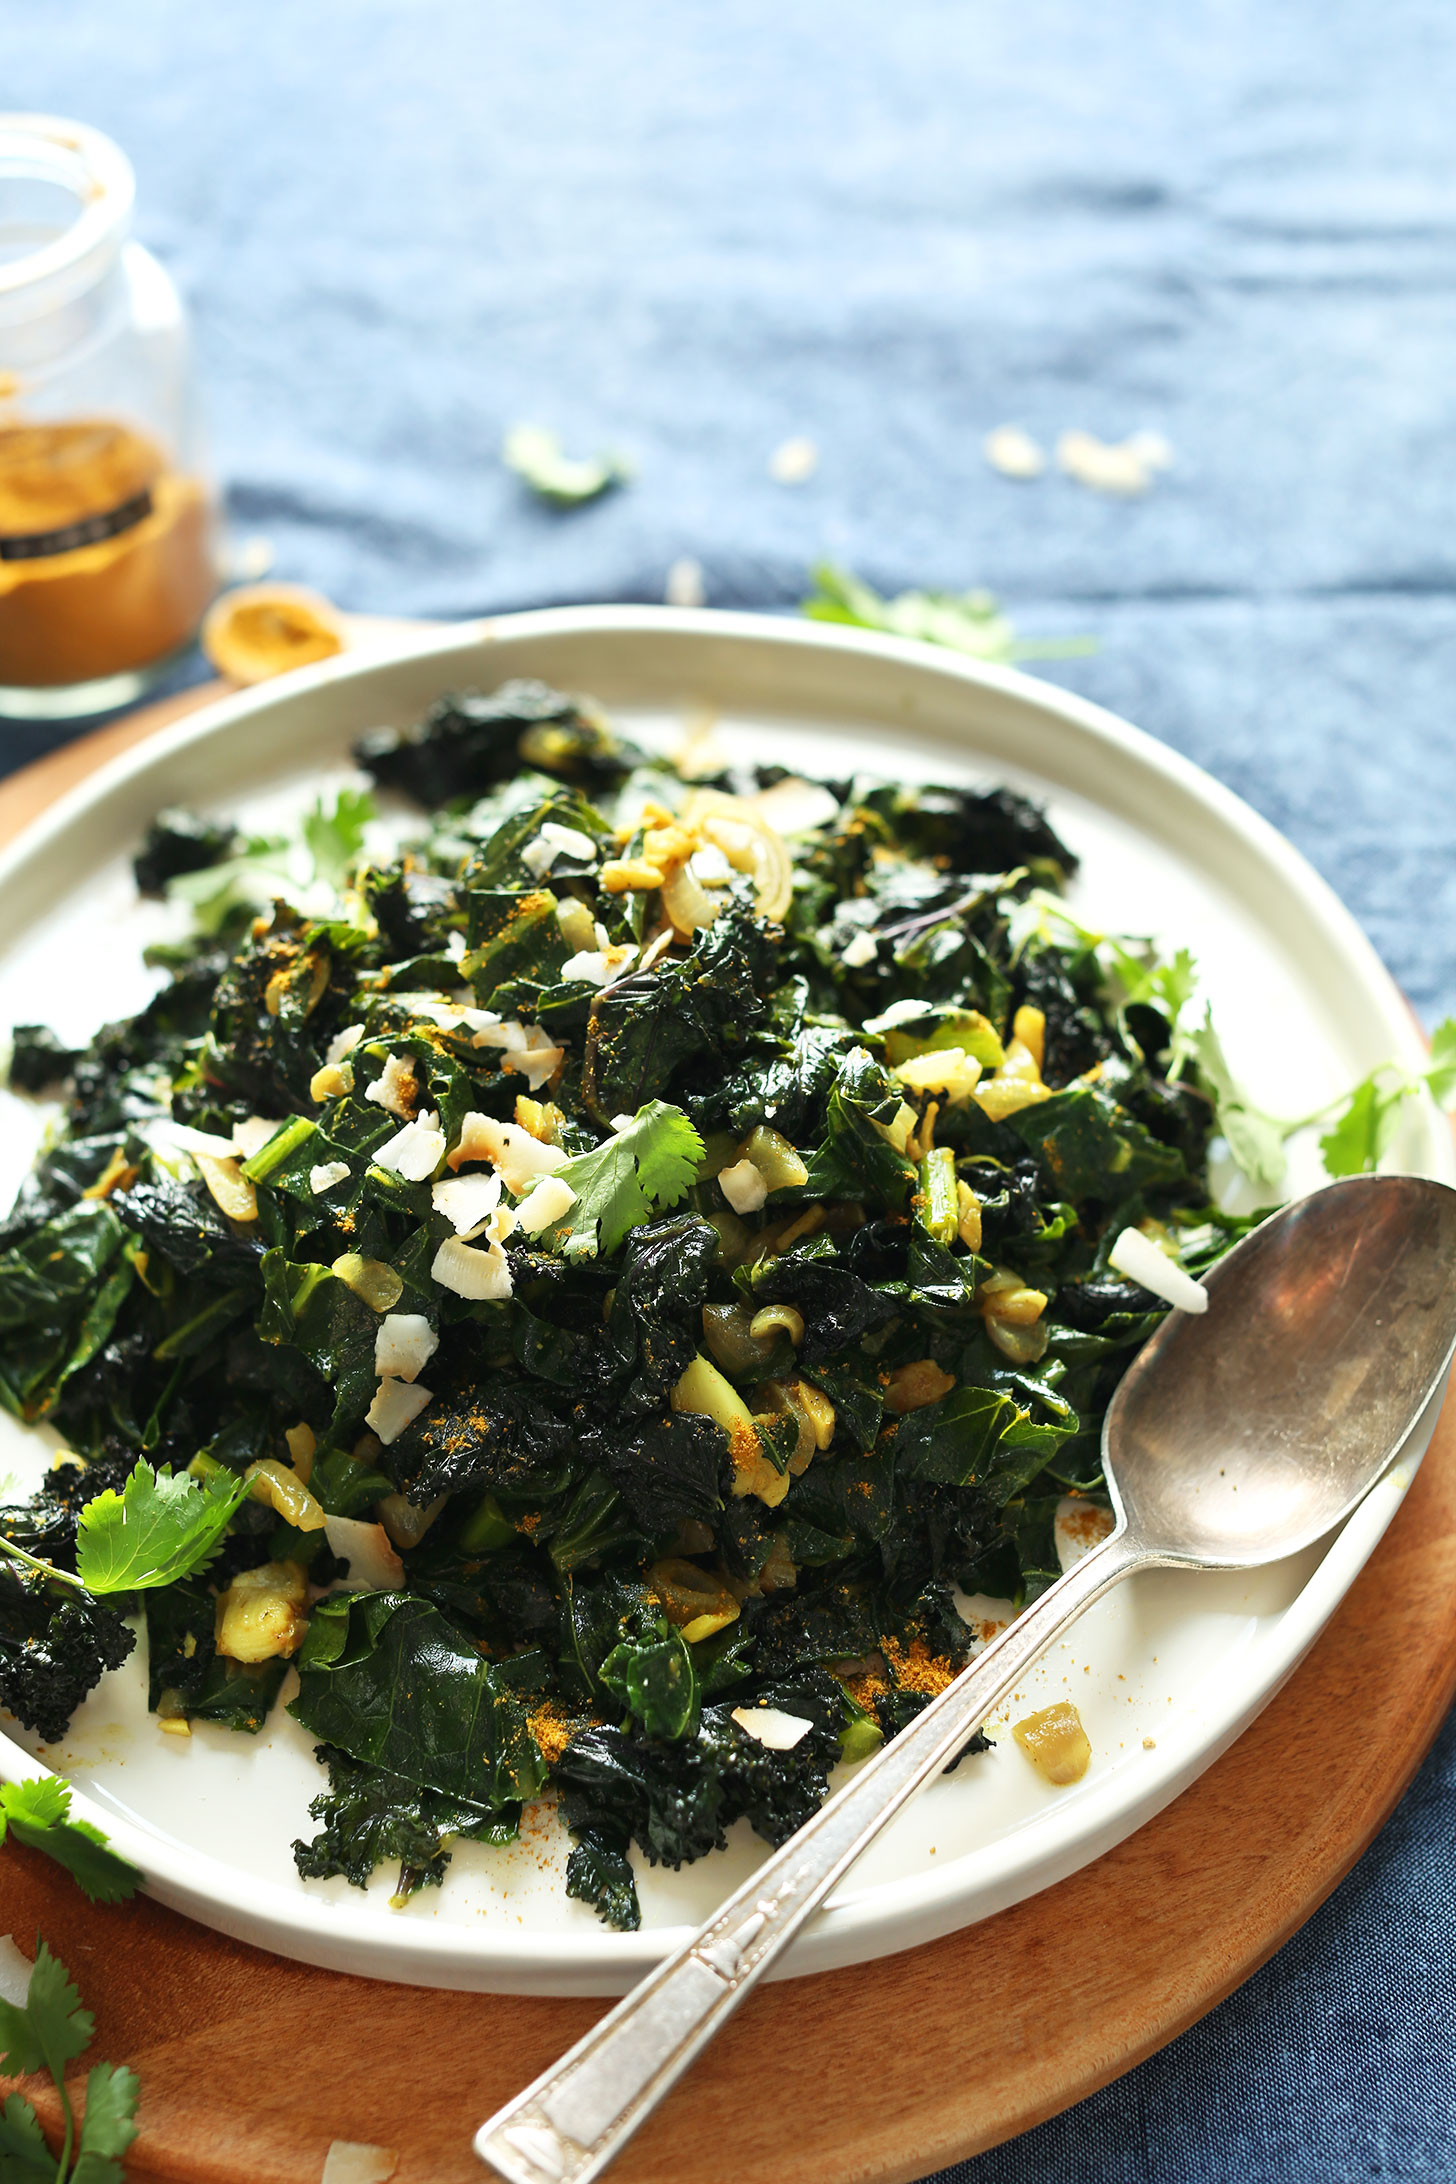 A big plate full of gluten-free vegan Coconut Curried Greens